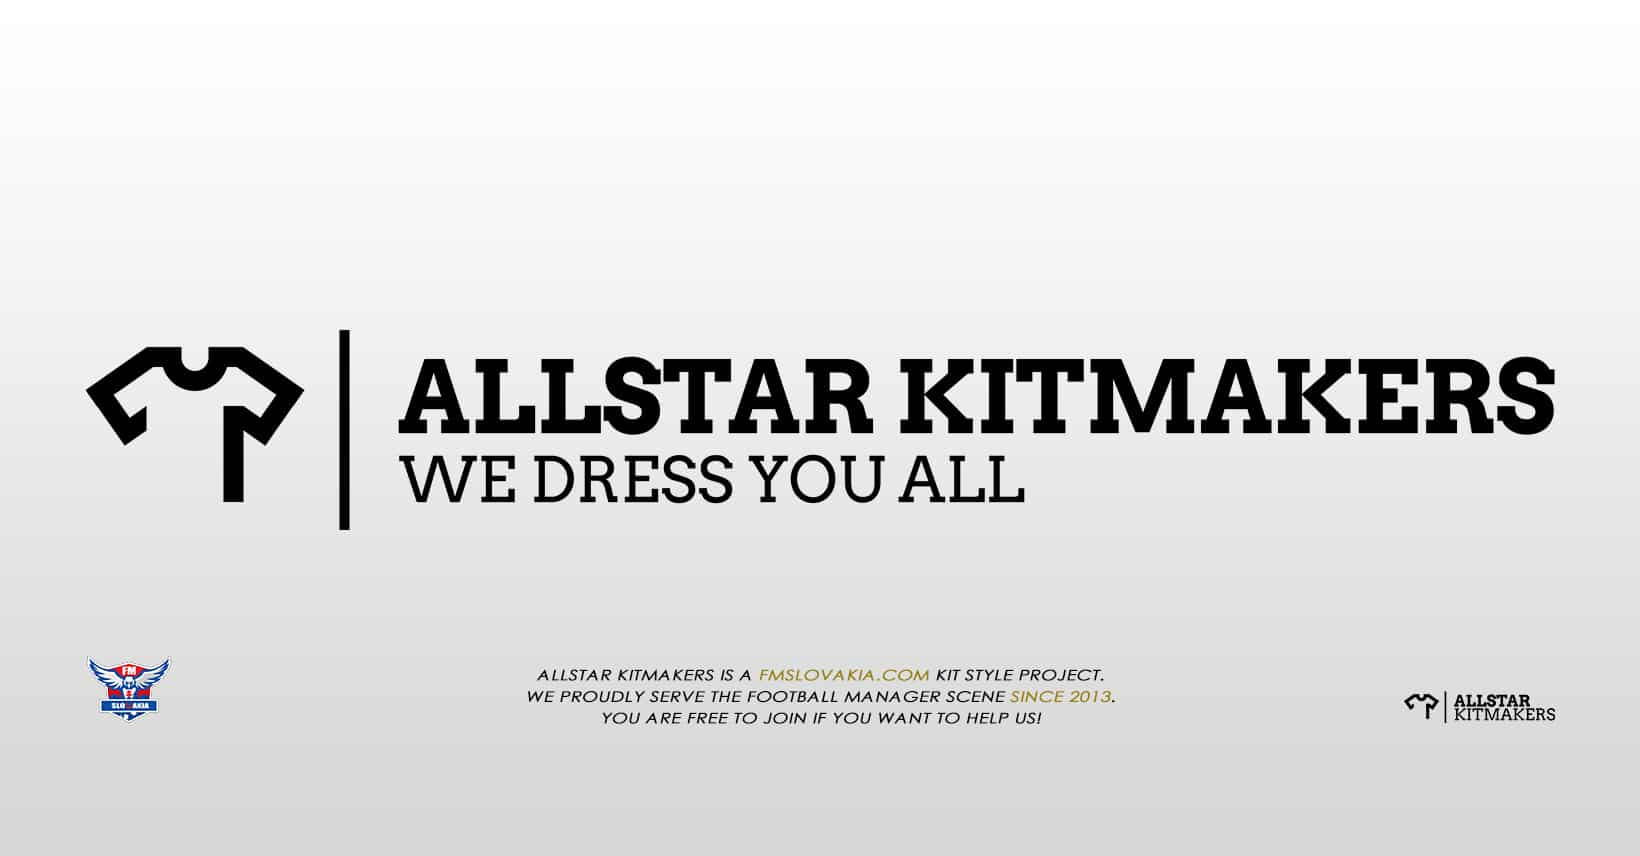 https://fmslovakia.com/wp-content/uploads/2020/04/group_header_allstar.jpg